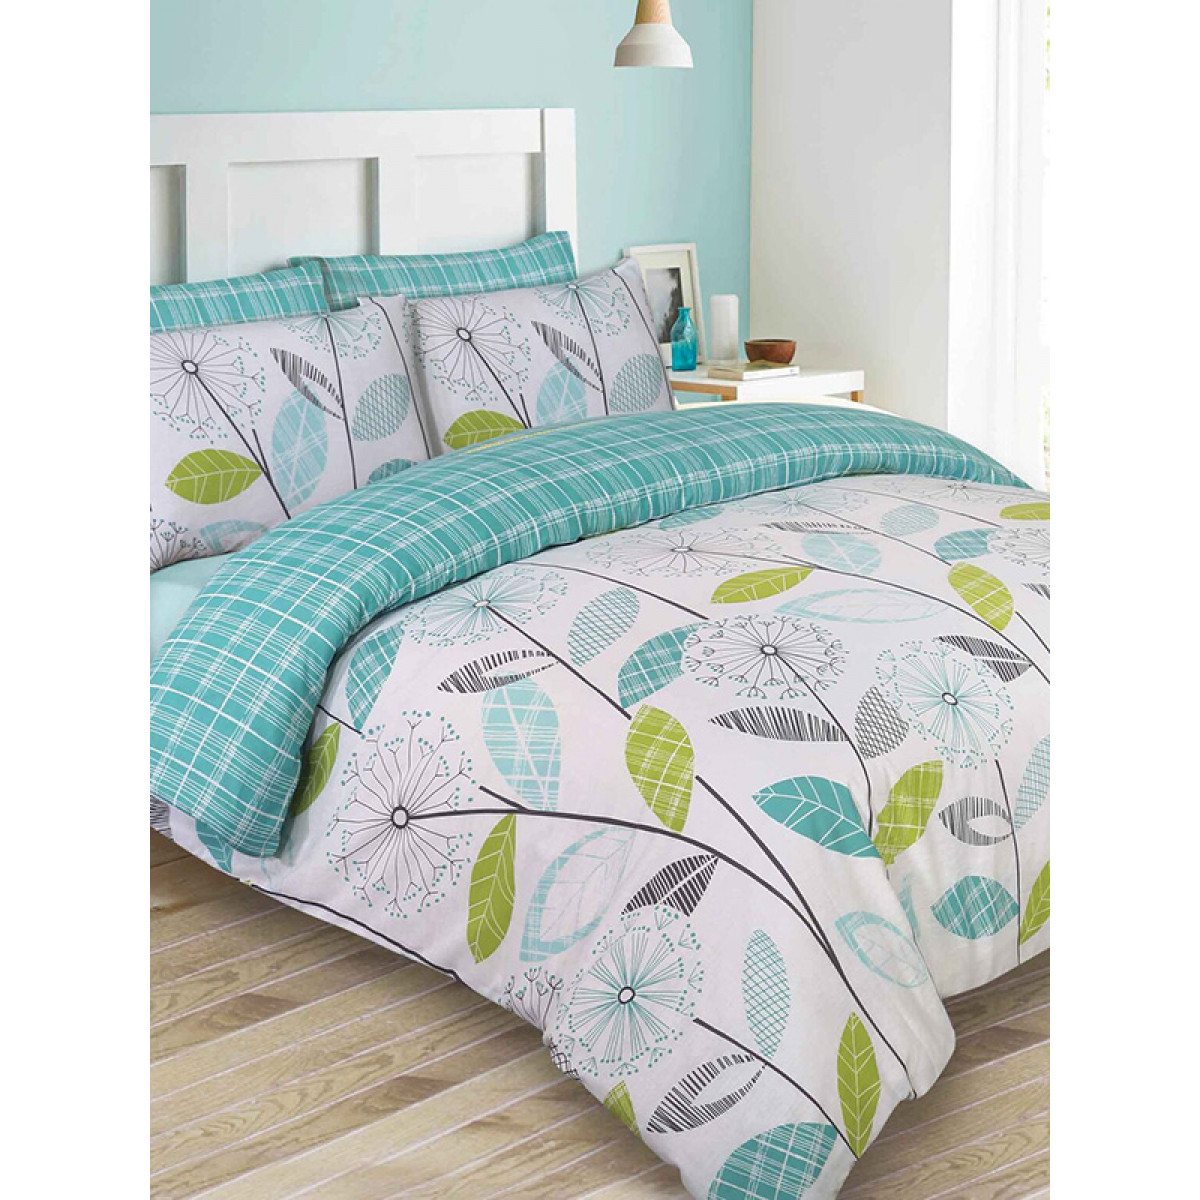 Allium Dandelion Teal Double Duvet Cover And Pillowcase